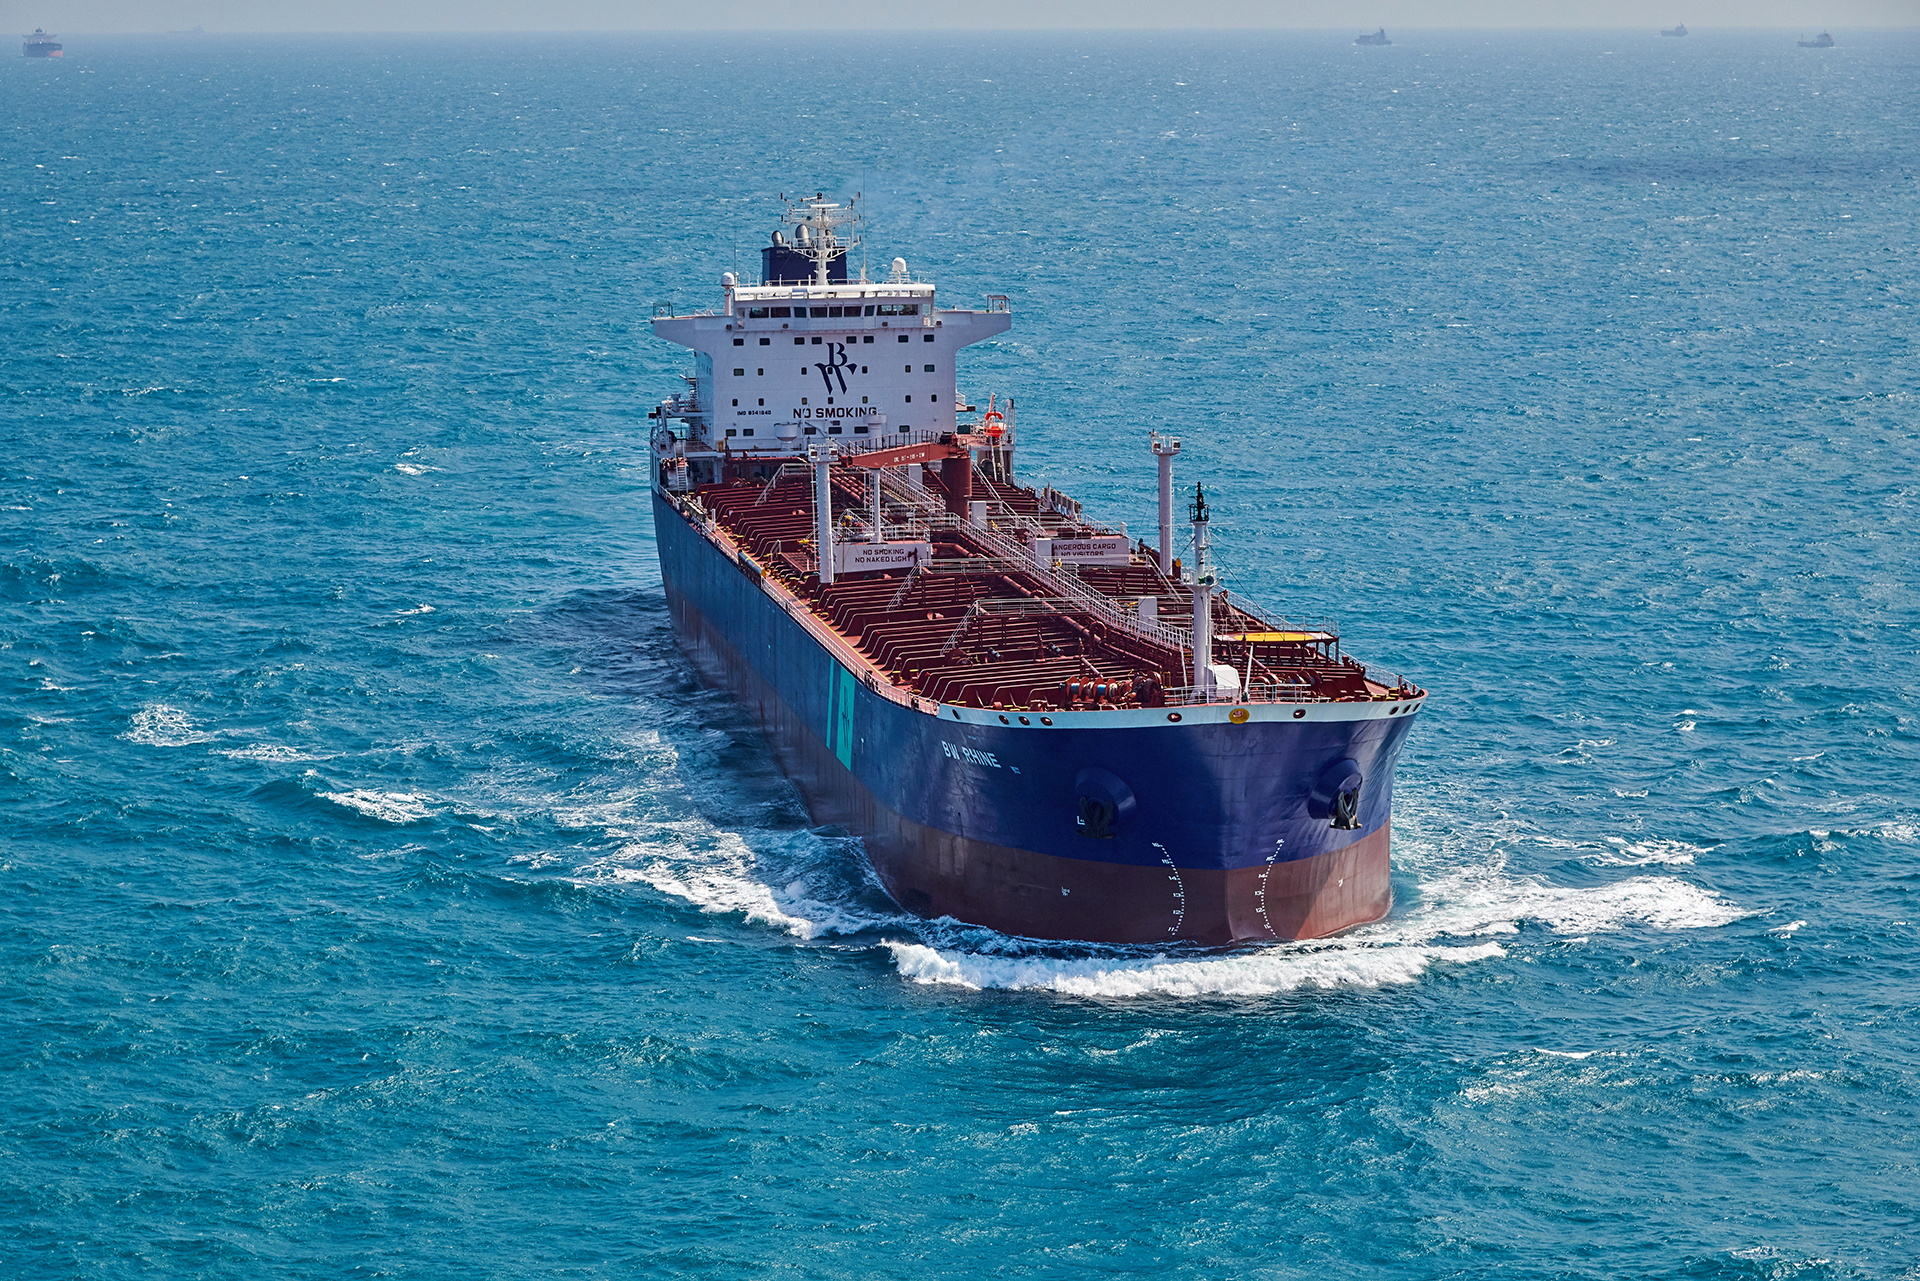 Oil tanker BW Rhine is seen in the Straits of Singapore in this handout photo taken in 2018.  Hafnia/Handout via REUTERS TV